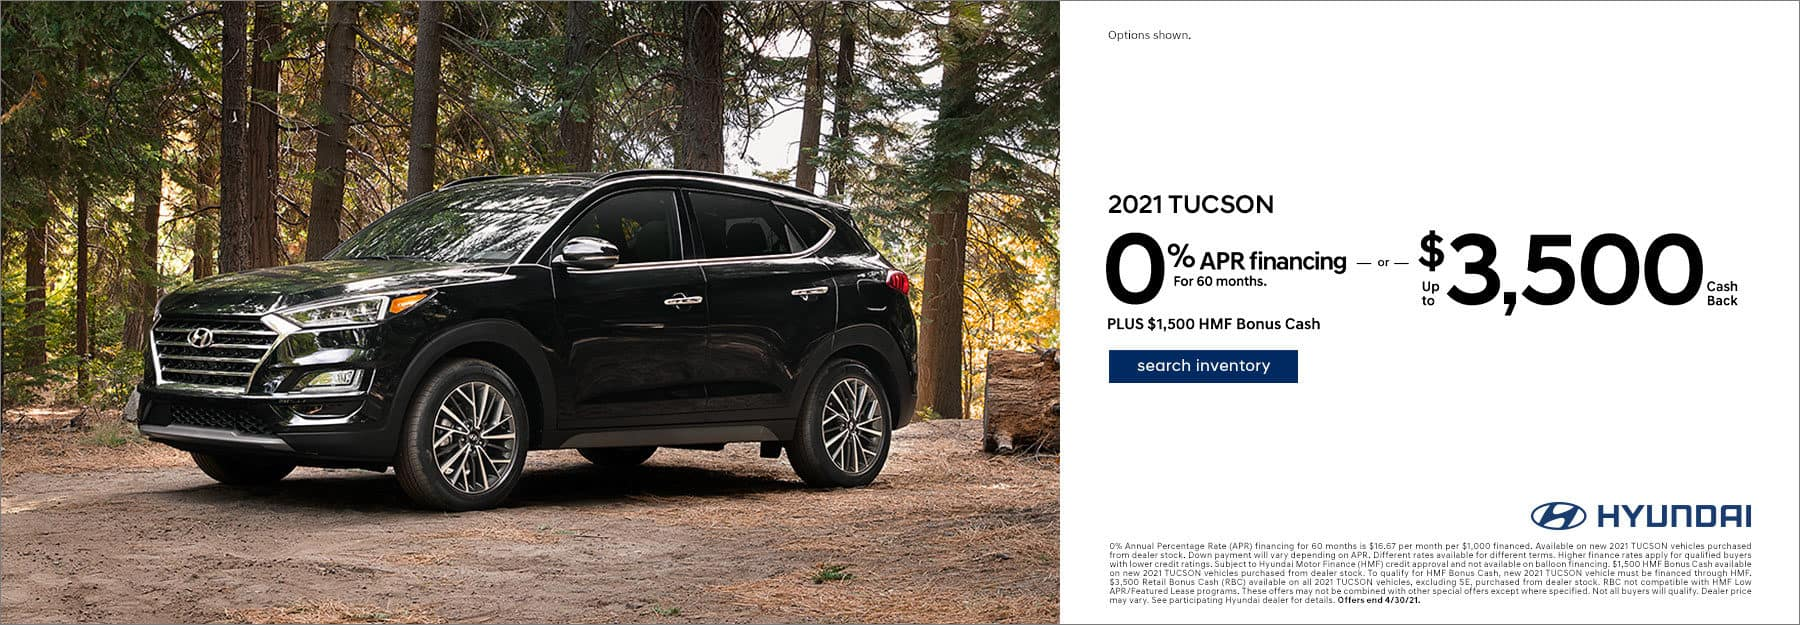 2021 Tucson 0% APR for 60